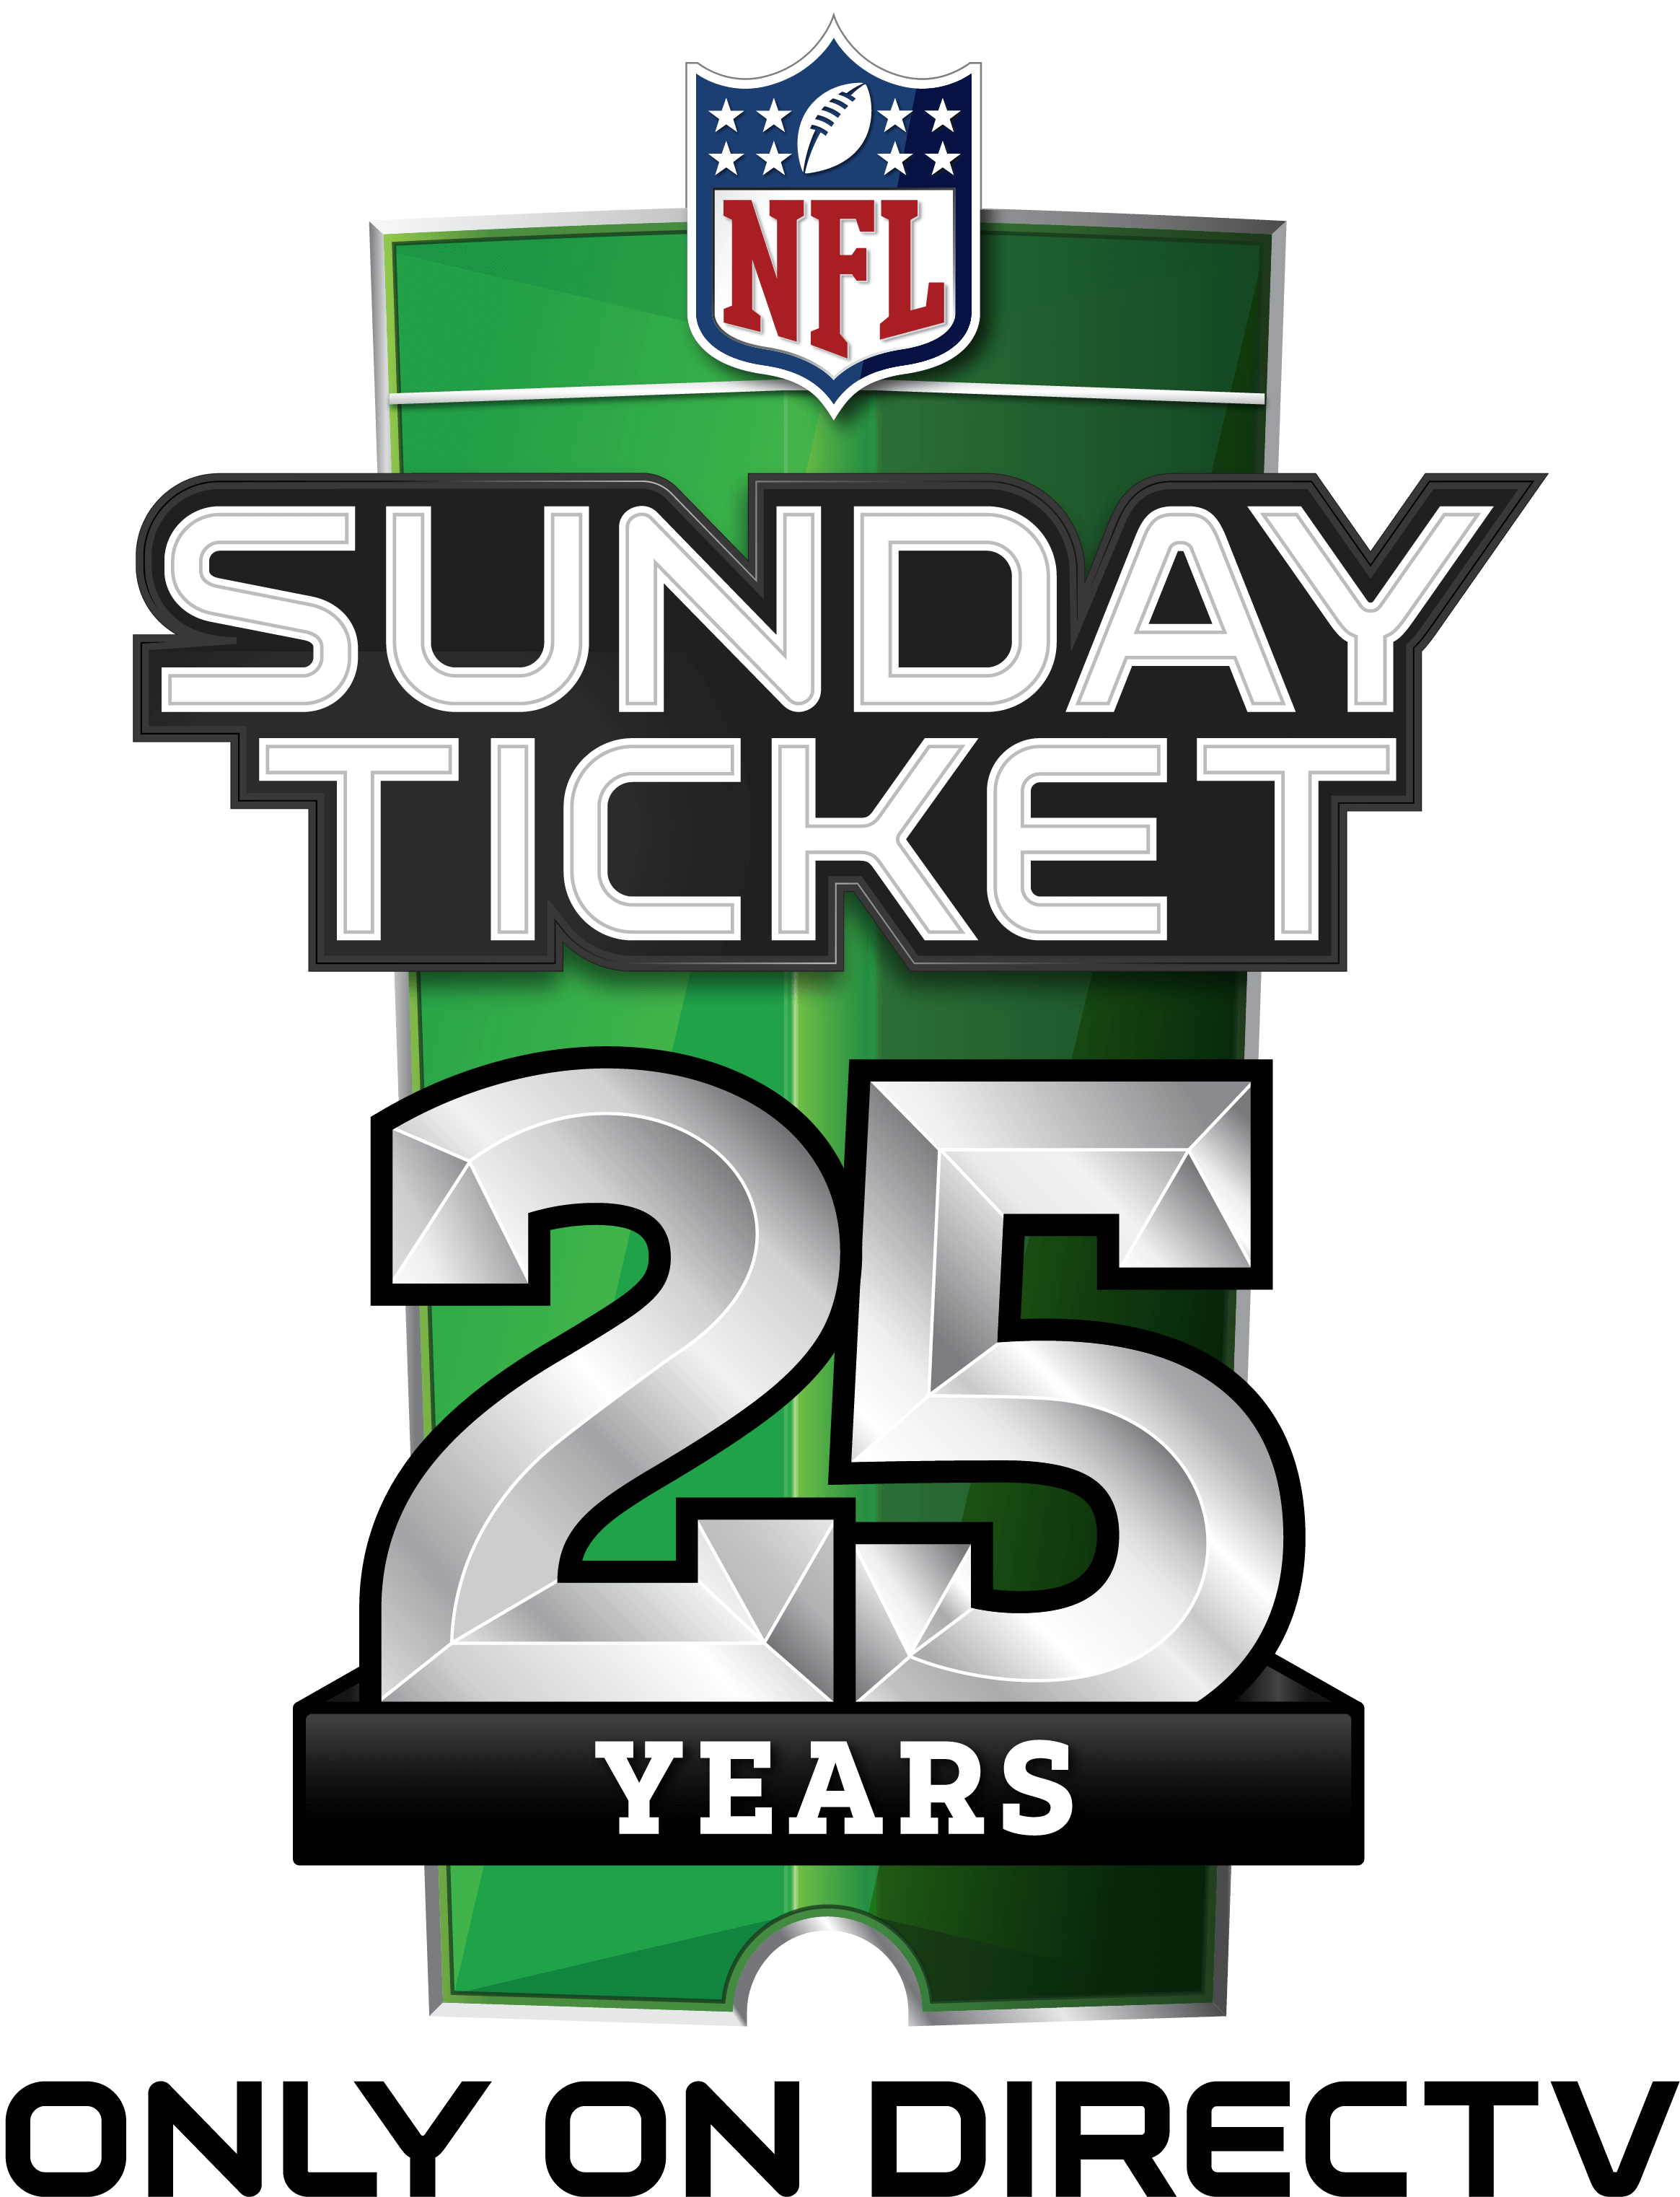 Nfl sunday ticket png.